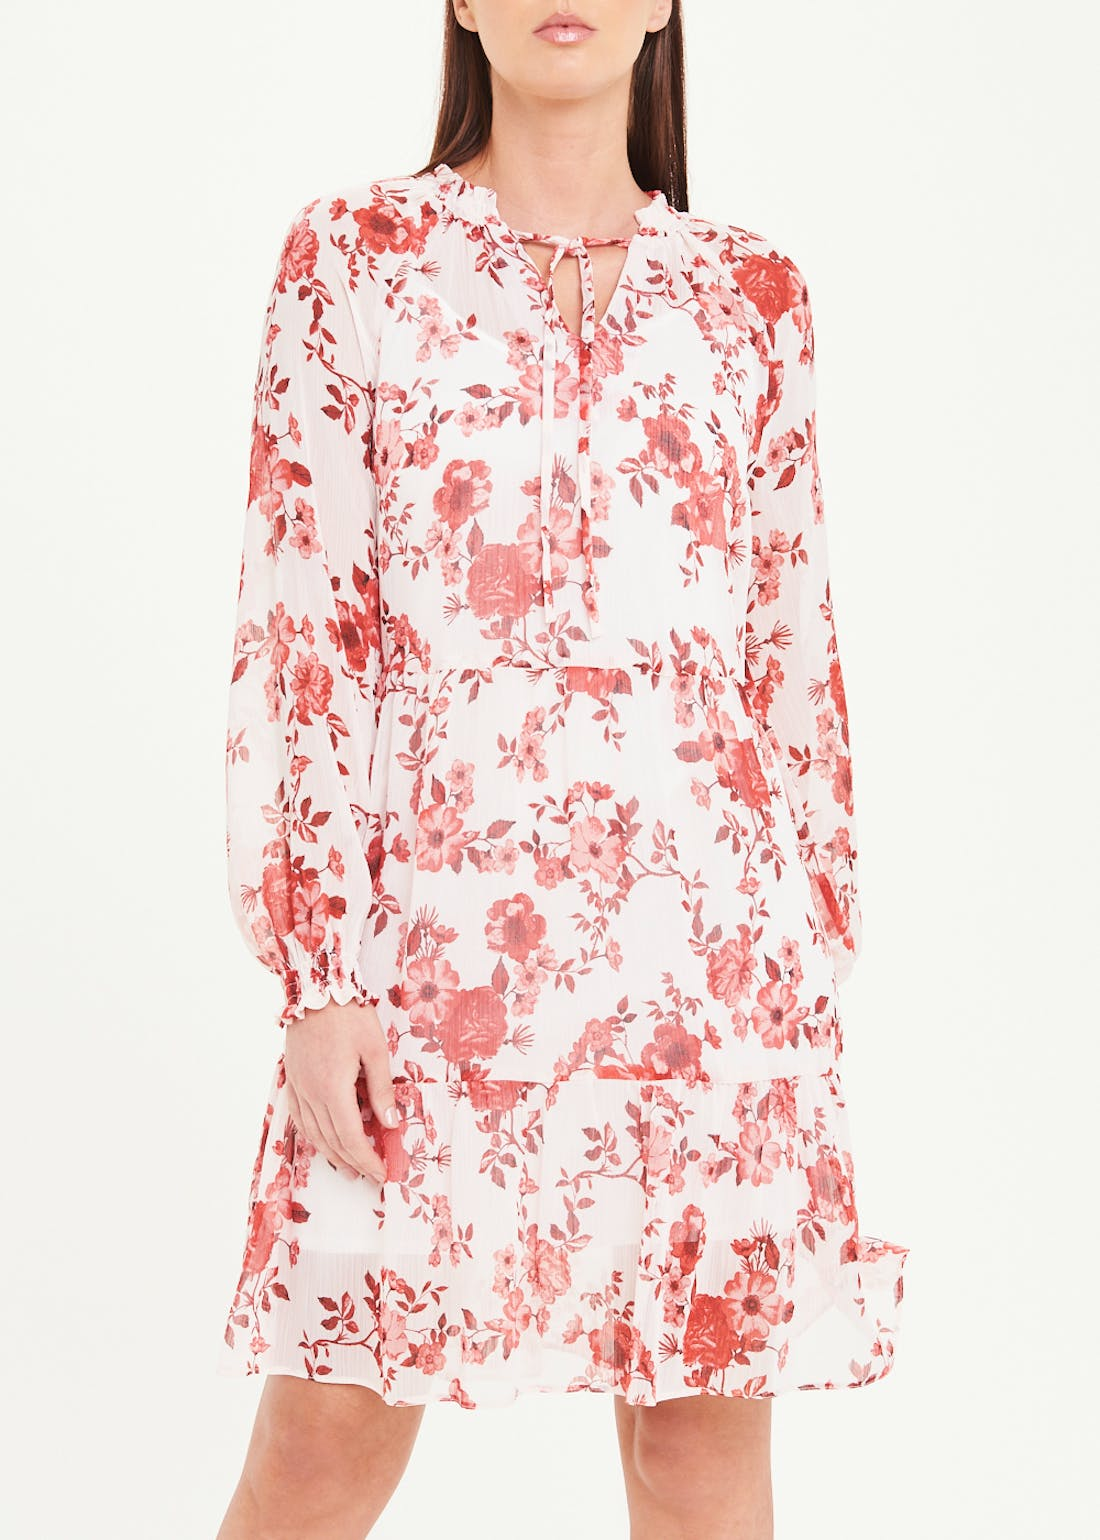 Cream Long Sleeve Floral Chiffon Dress